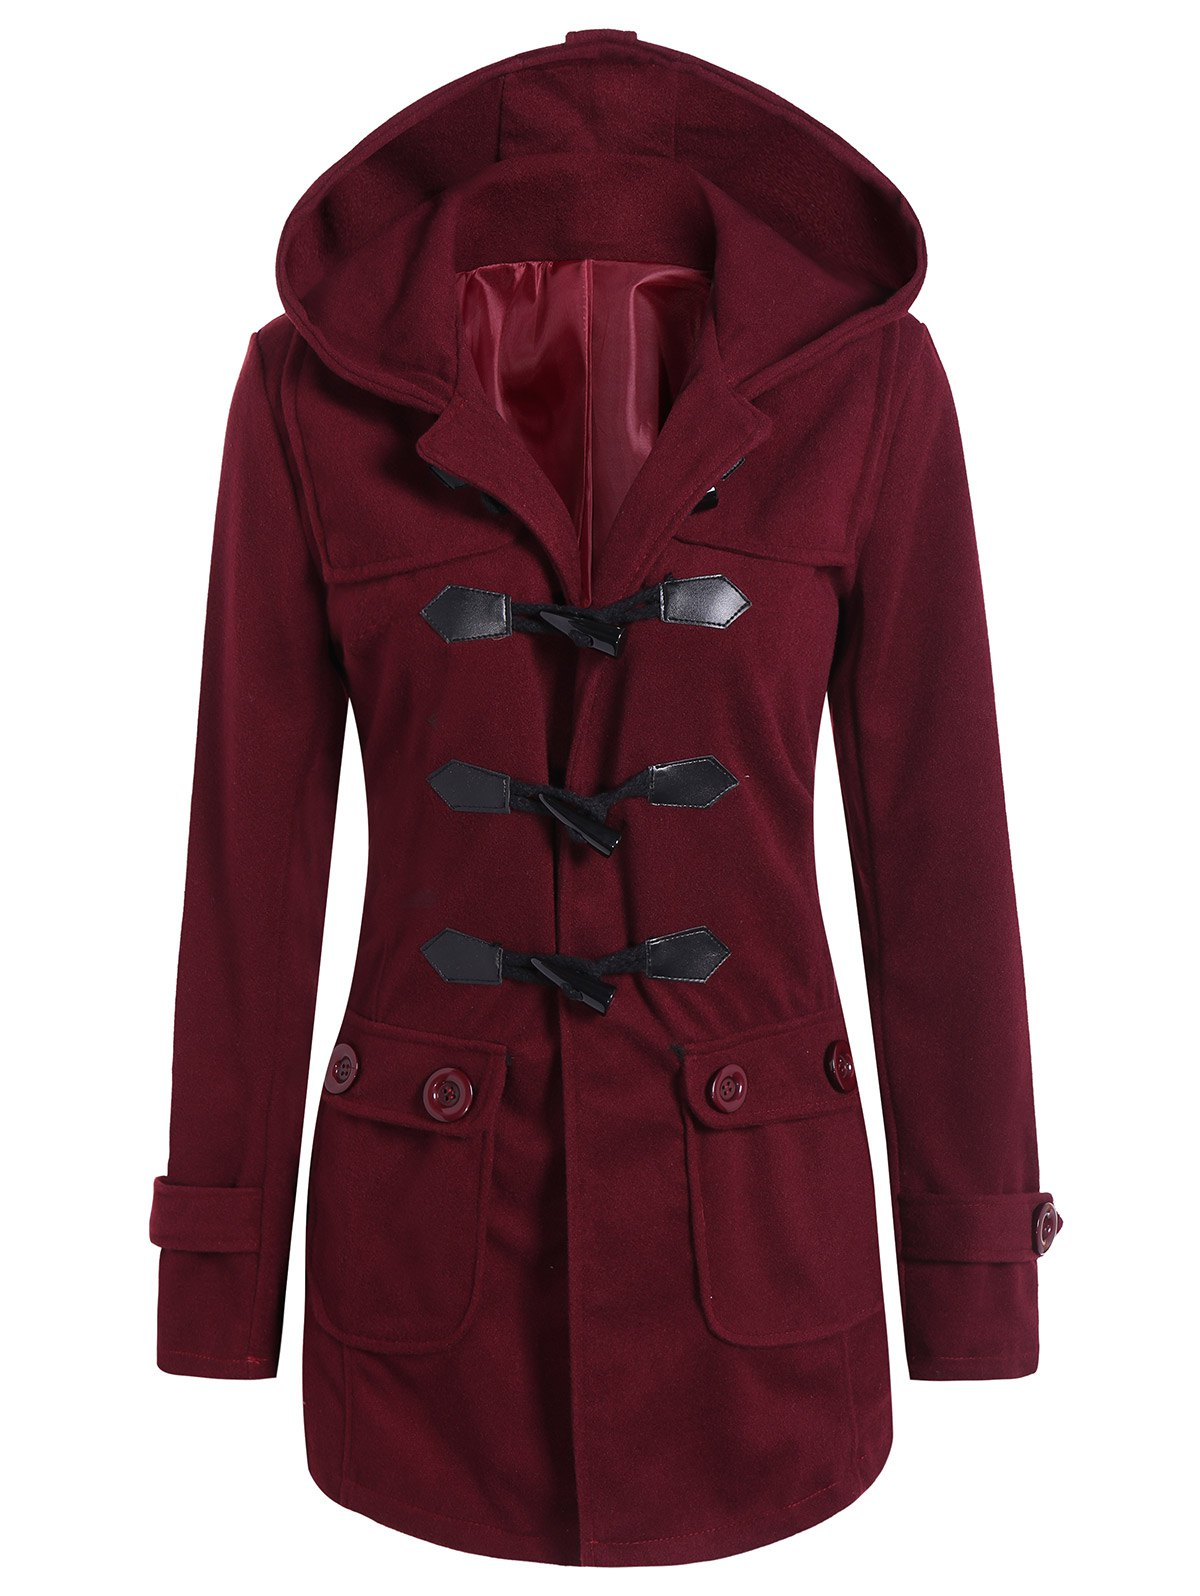 Hot Hooded Flap Pockets Duffle Coat